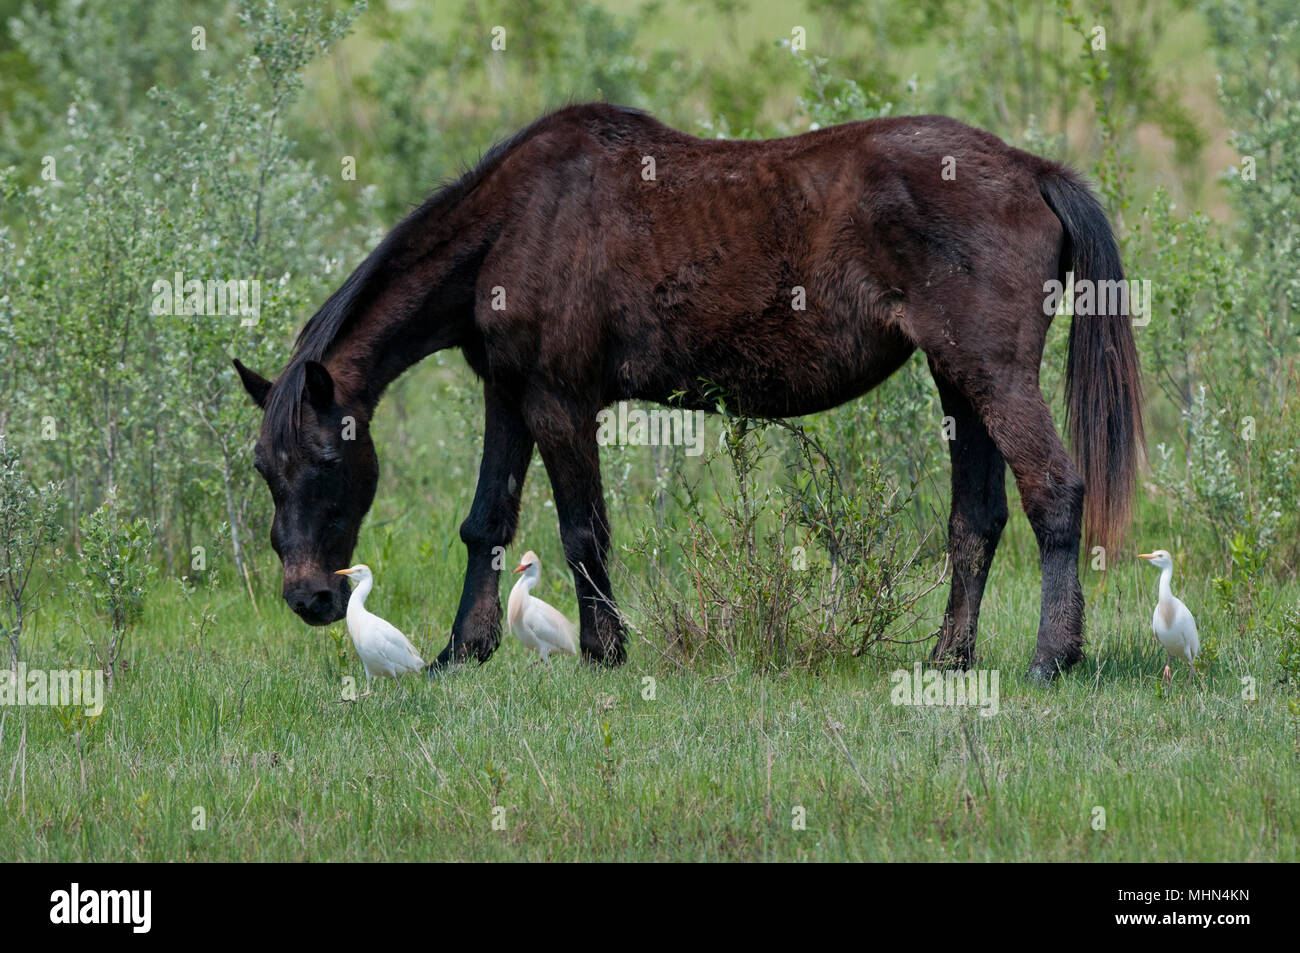 A Black Wild Horse On Green Grass Background Stock Photo Alamy